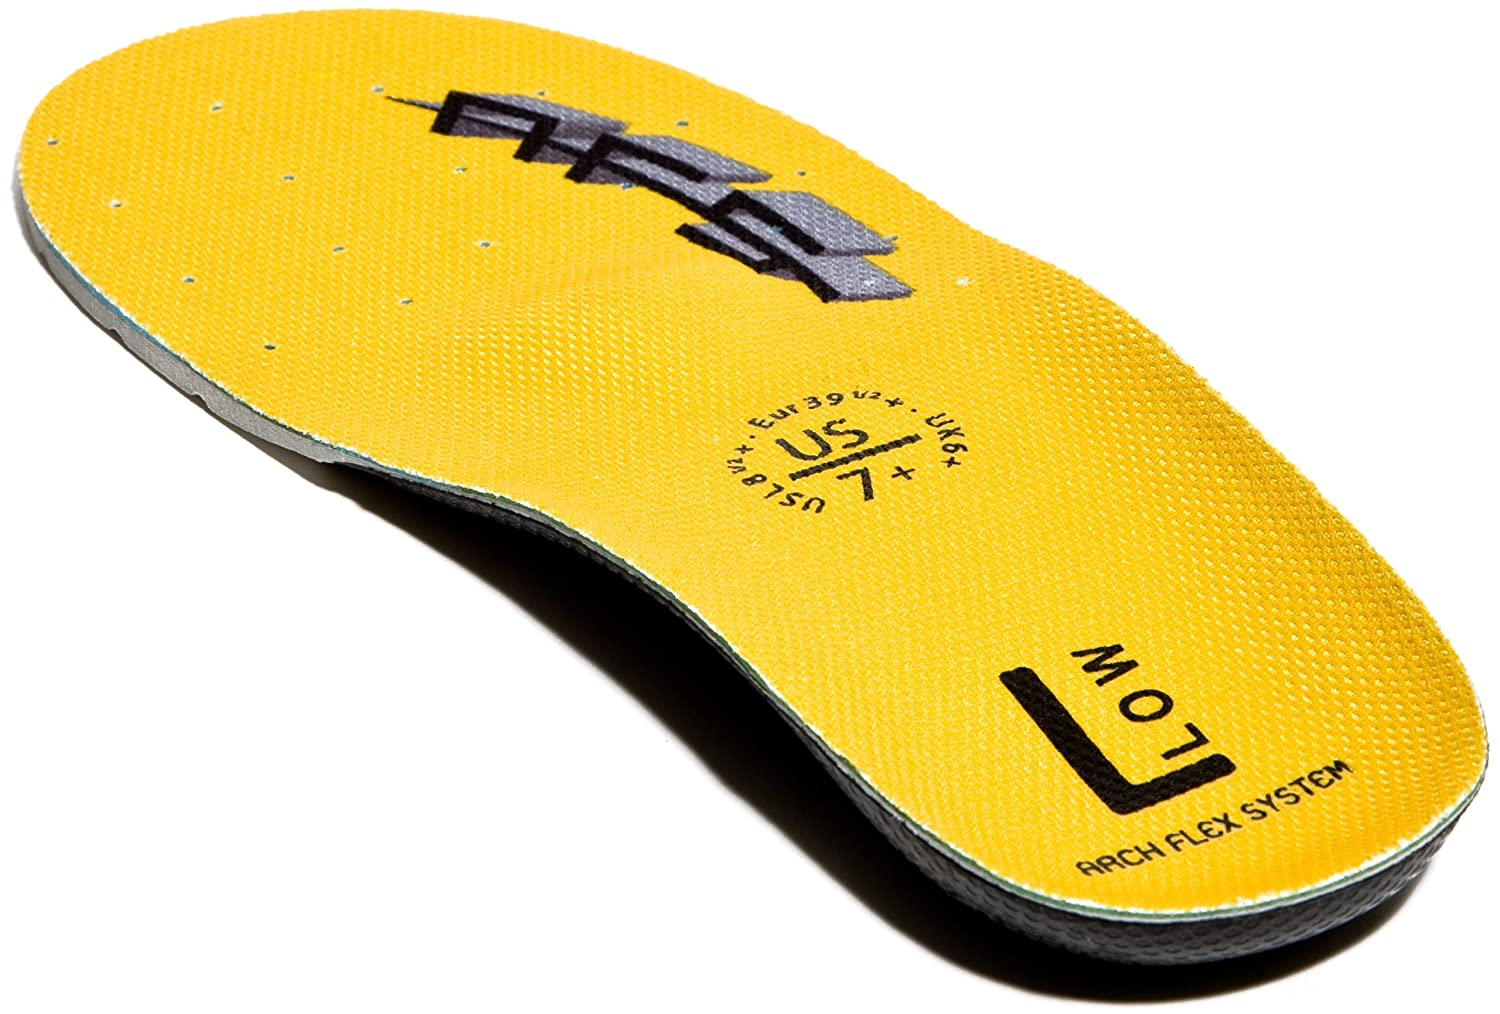 3cd7279ffdca Amazon.com  ArchFlexSystem Adult Upgrade Replacement Insole  Shoes